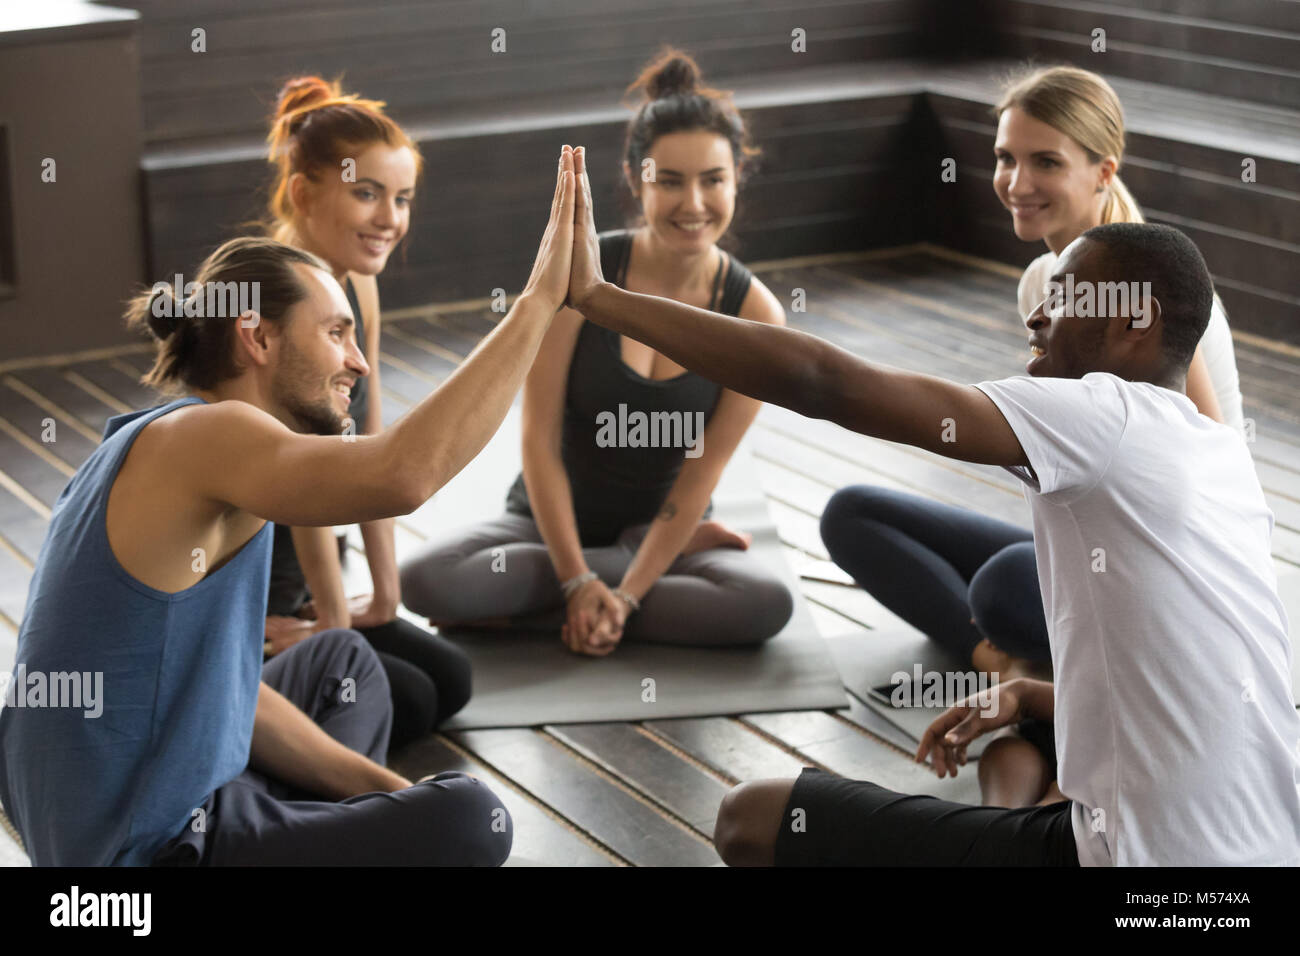 Smiling diverse yoga team members giving high-five at group trai - Stock Image